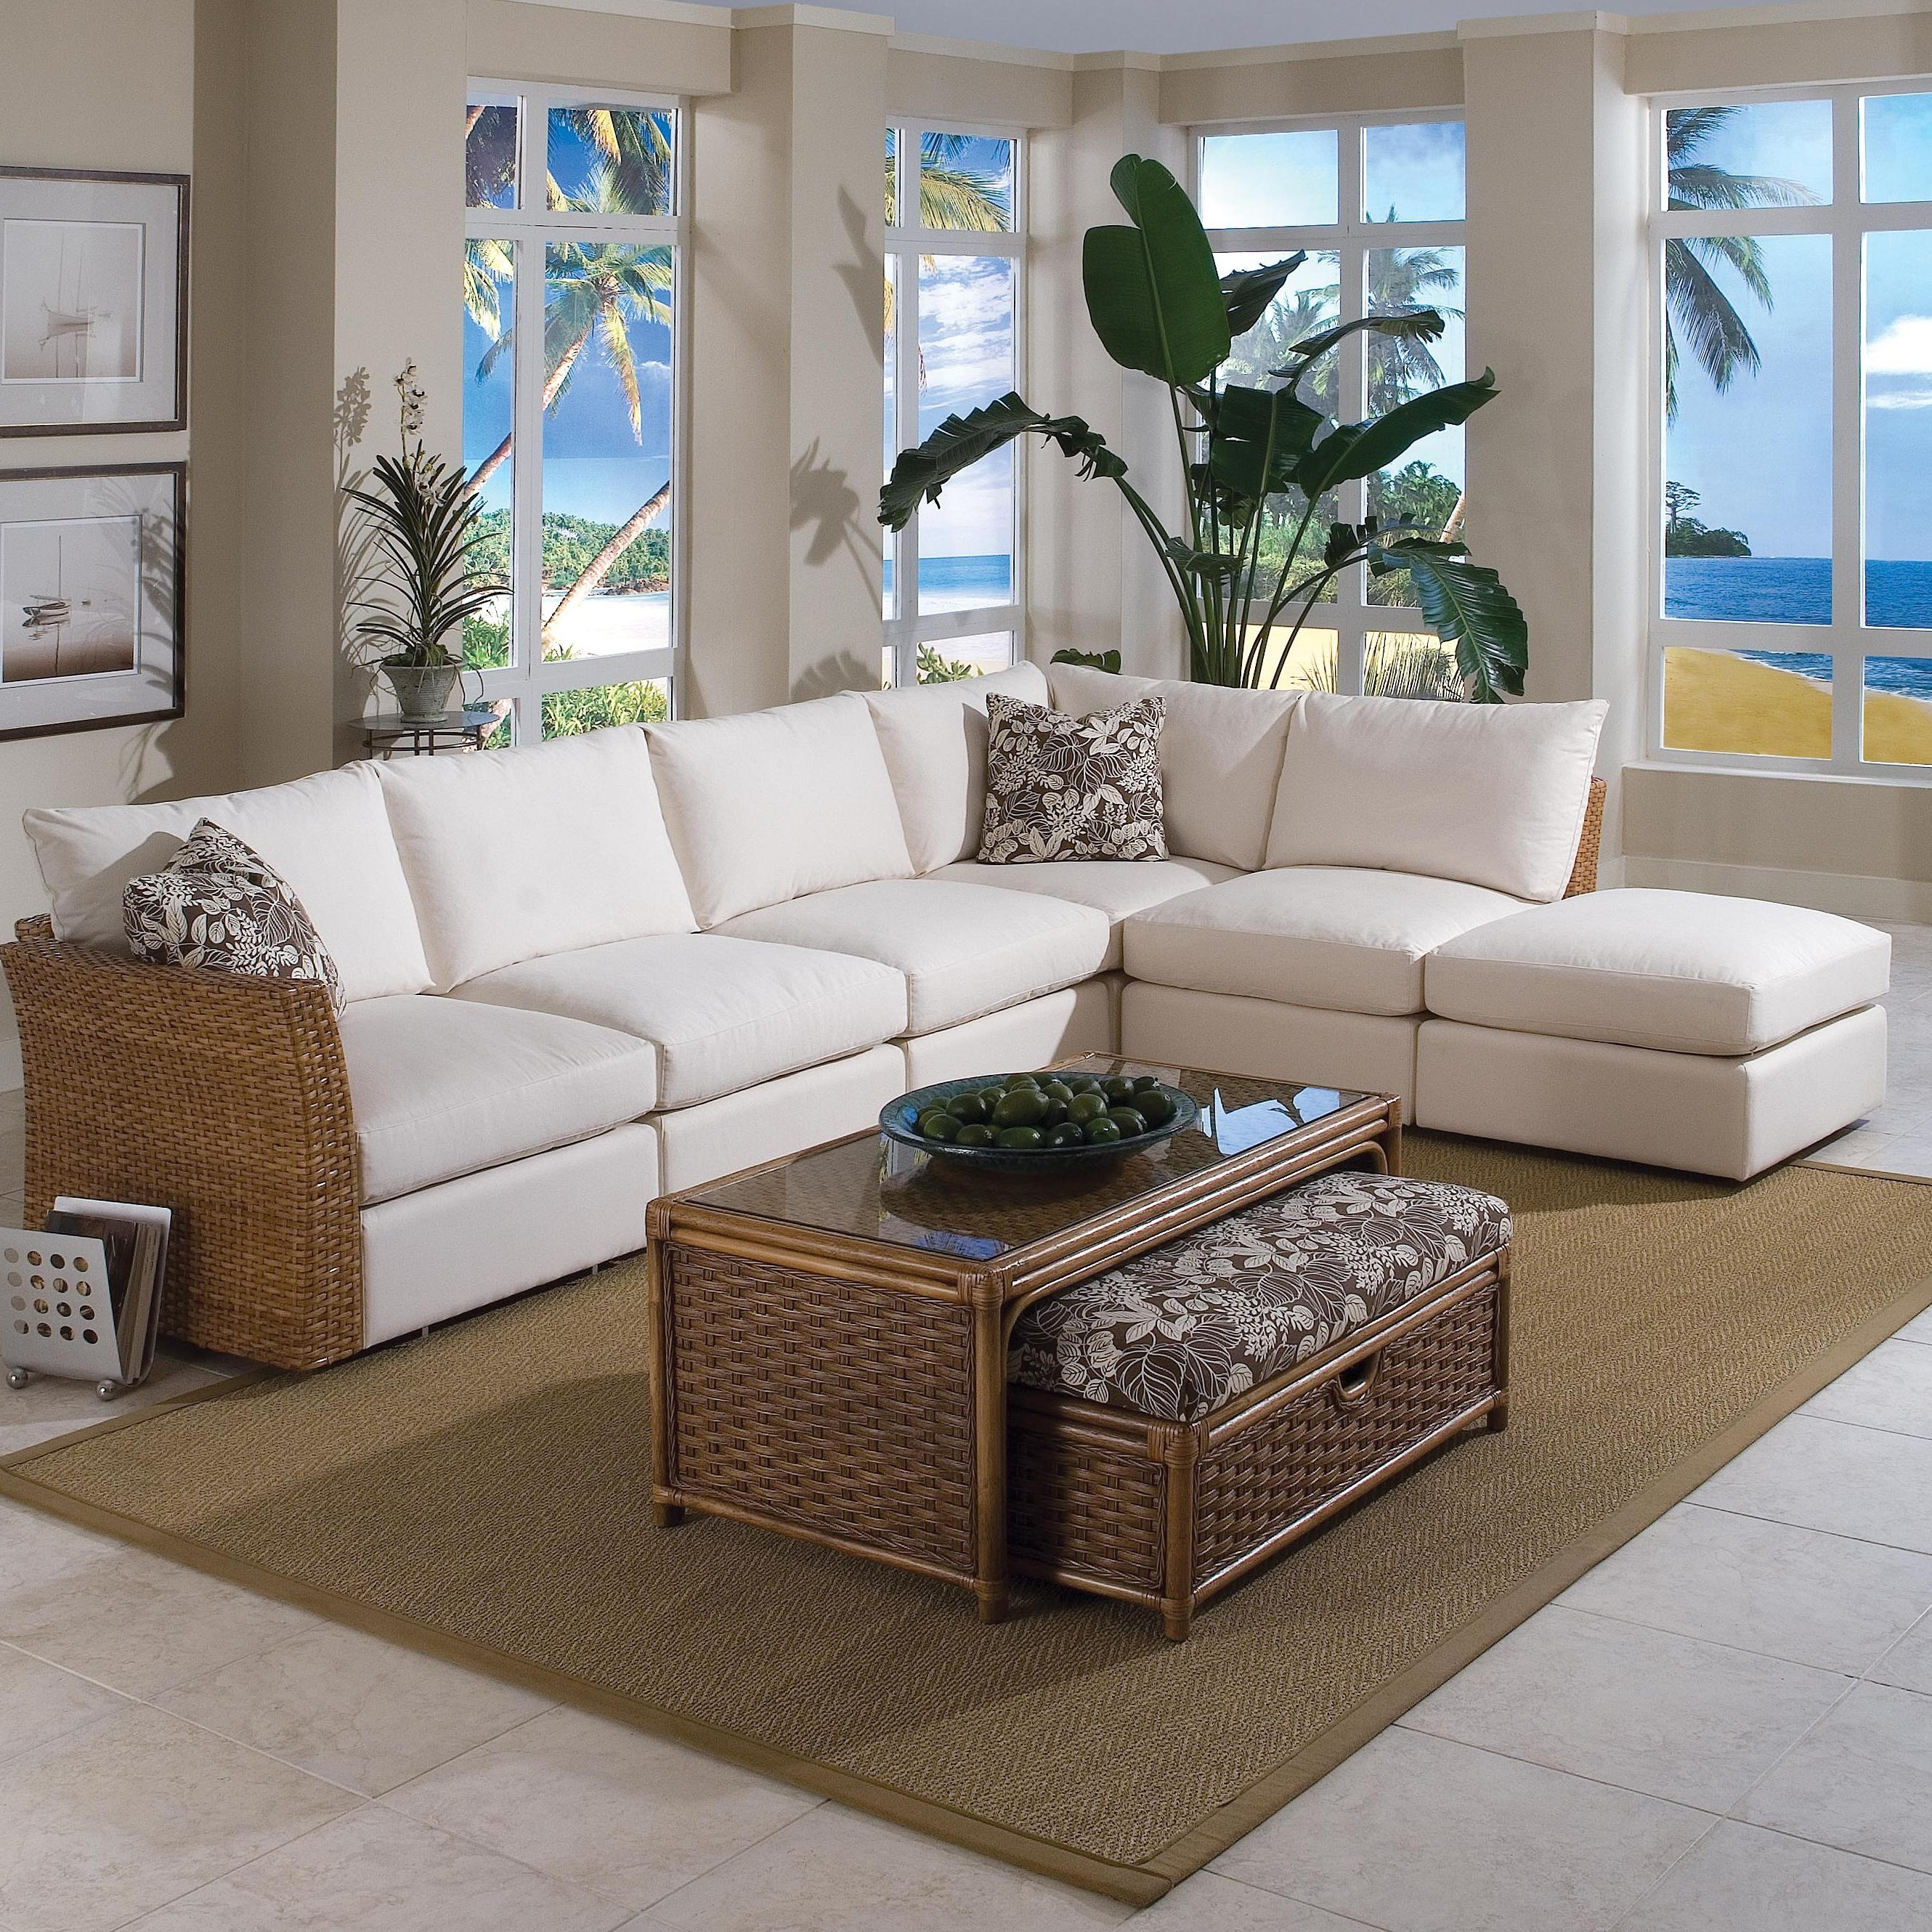 2018 Havertys Sectional Sofas Regarding Braxton Culler Grand Water Point Tropical Sectional Sofa With Two (View 1 of 15)